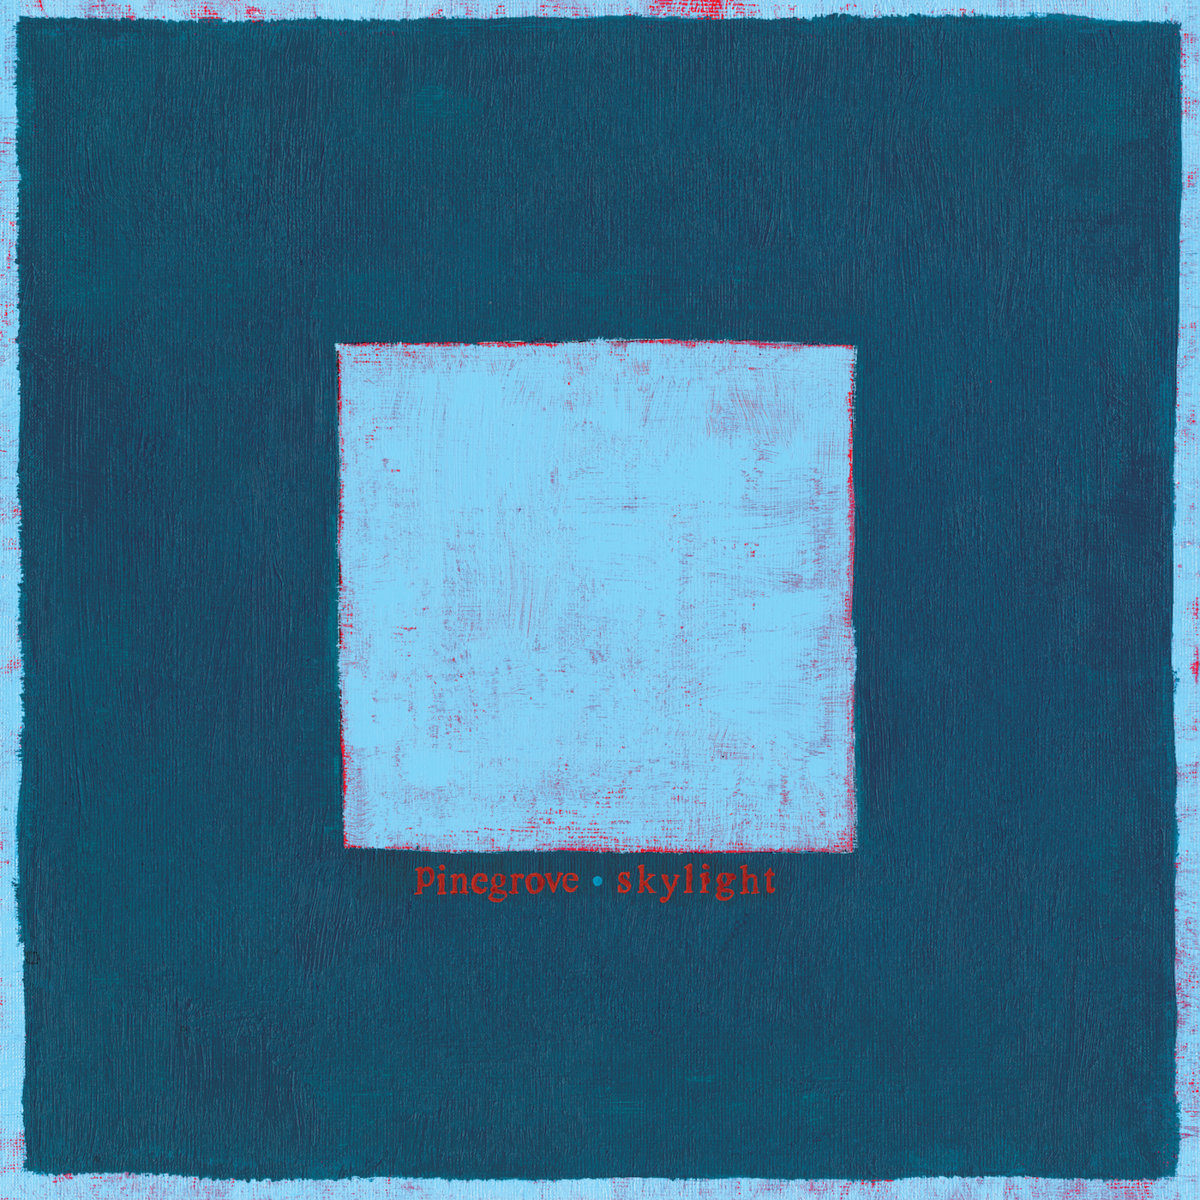 Skylight  by Pinegrove (Image retrieved from https://pinegrove.bandcamp.com/)